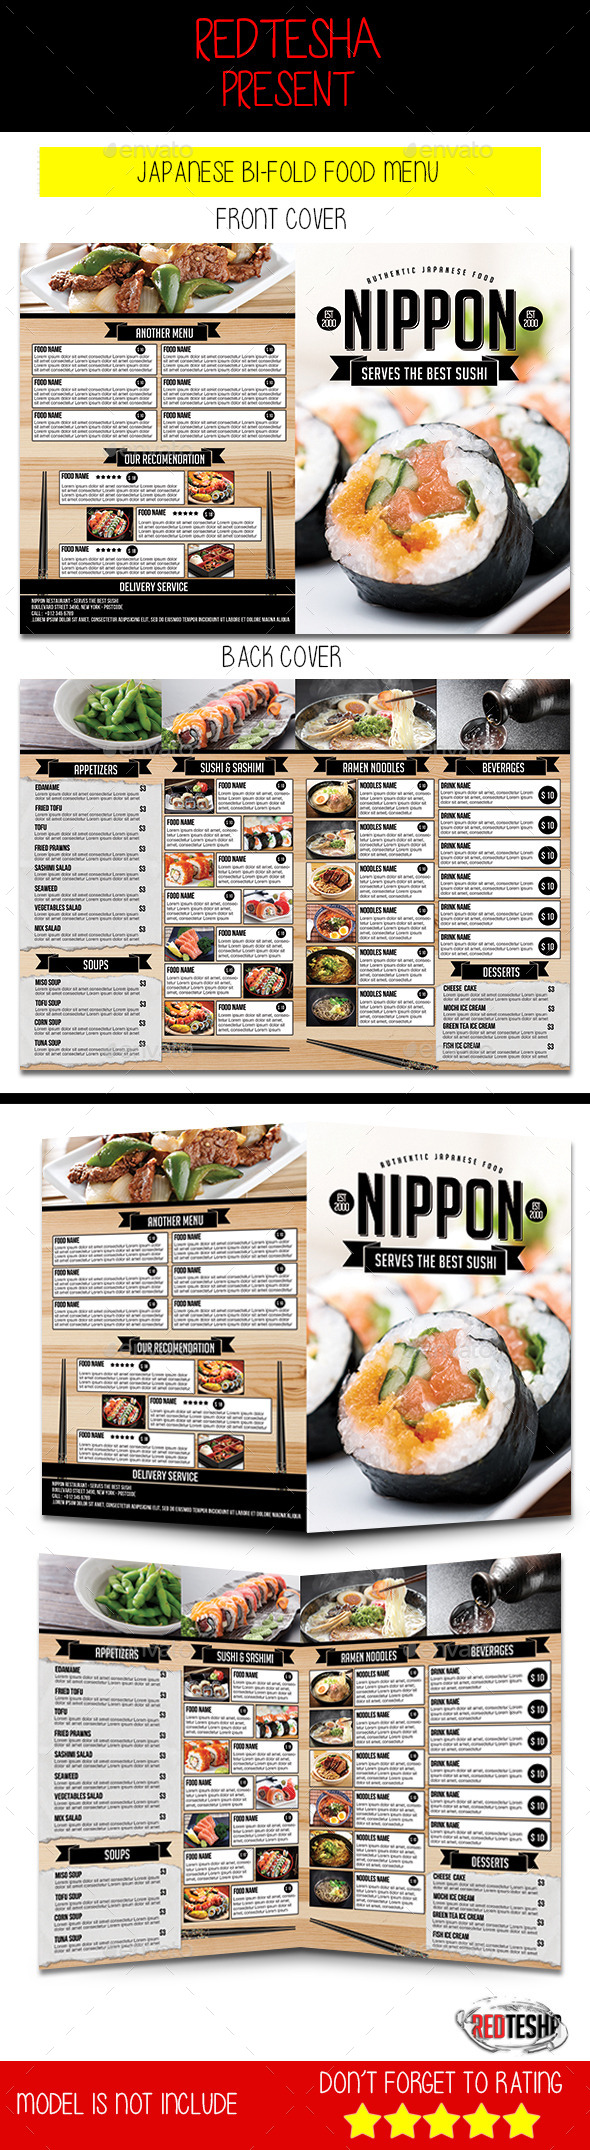 Japanese Bi-Fold Menu - Food Menus Print Templates